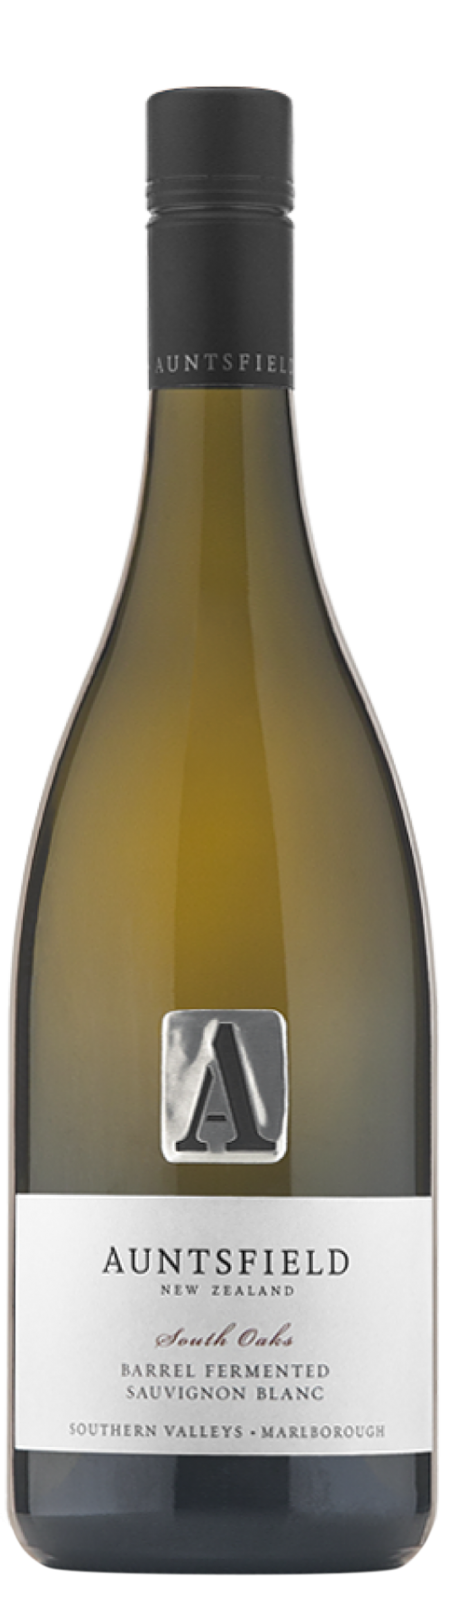 2017 Single Block 'South Oaks' Barrel Fermented Sauvignon Blanc